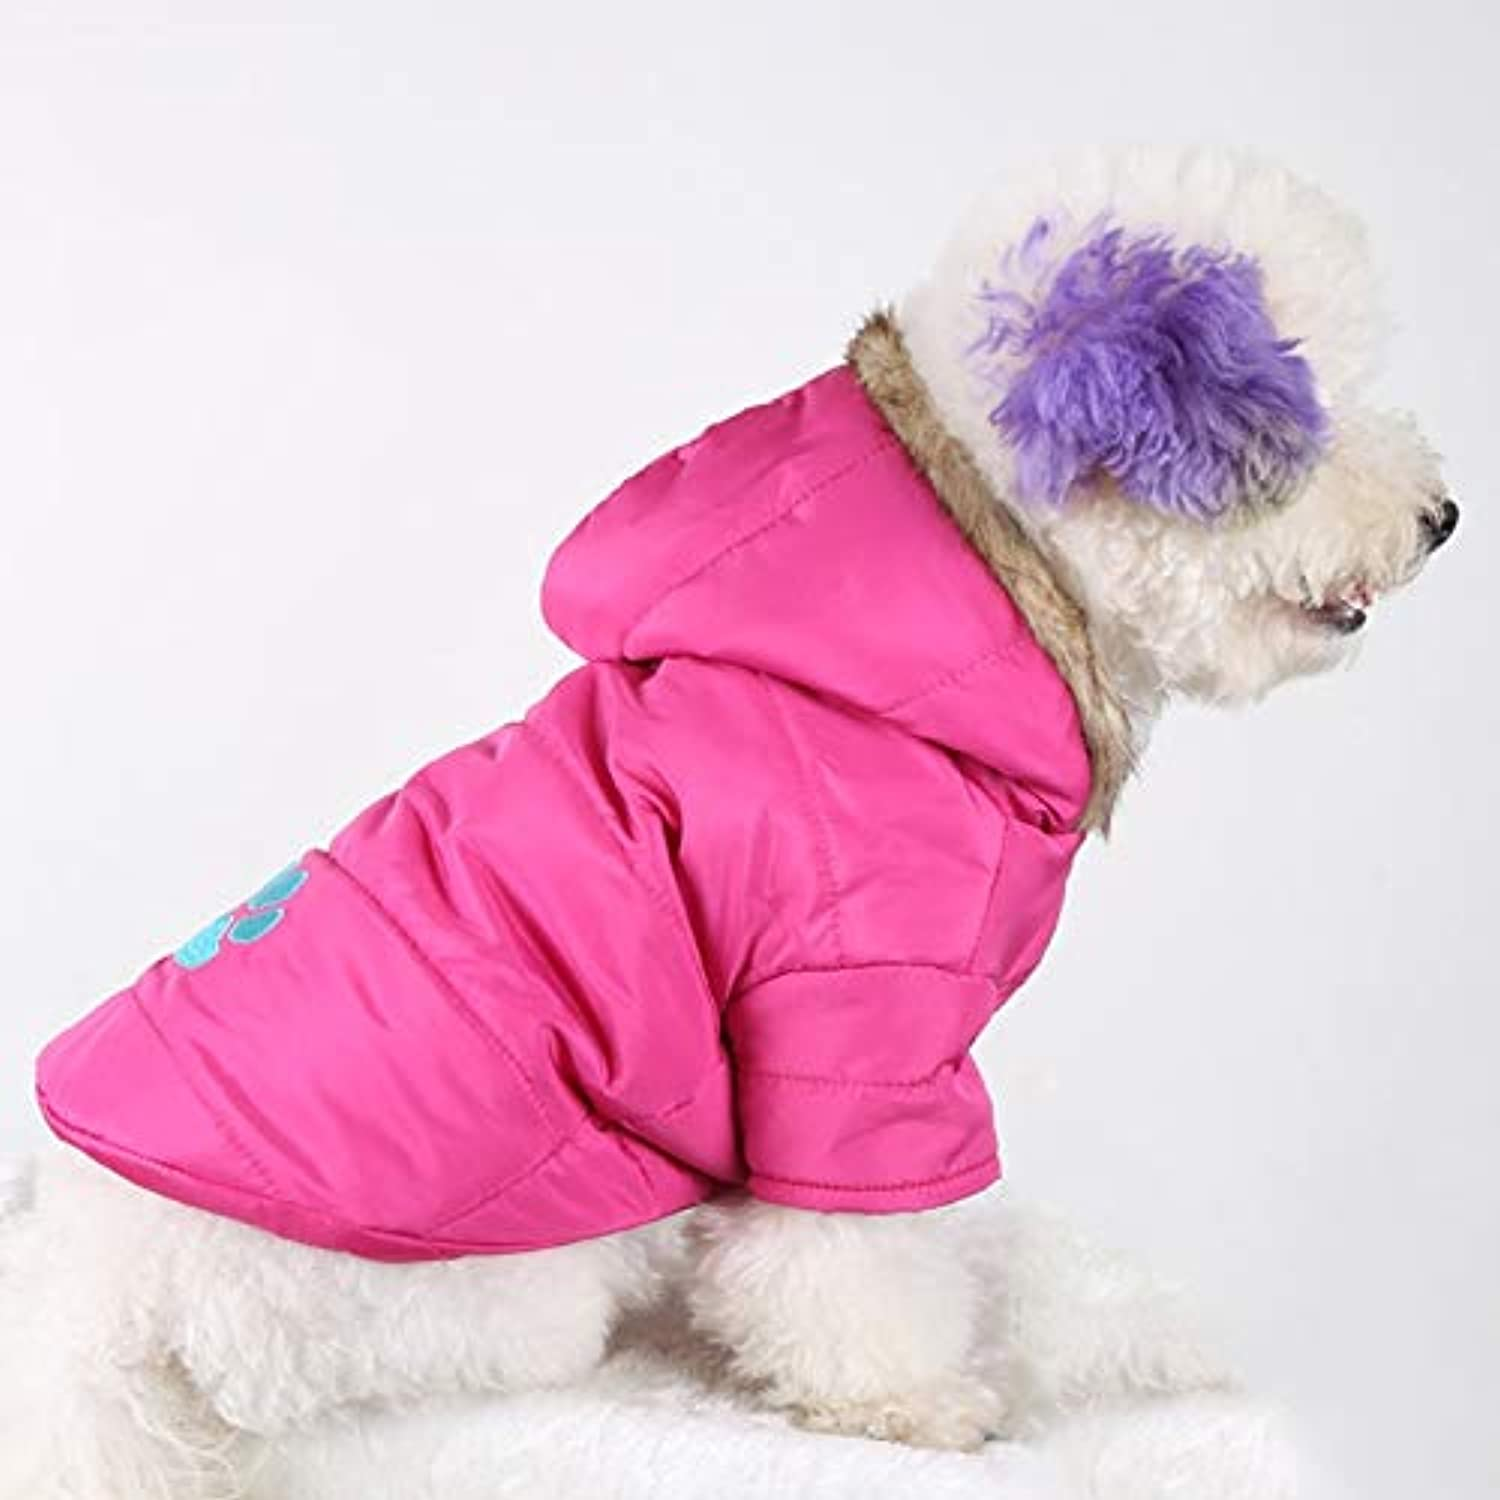 Pet Supplies hyx and Winter Style Pet Embroidered Dog Thicken Warm Cotton Garment Size  M, Bust  5259cm, Neck  3337cm (color   Pink)